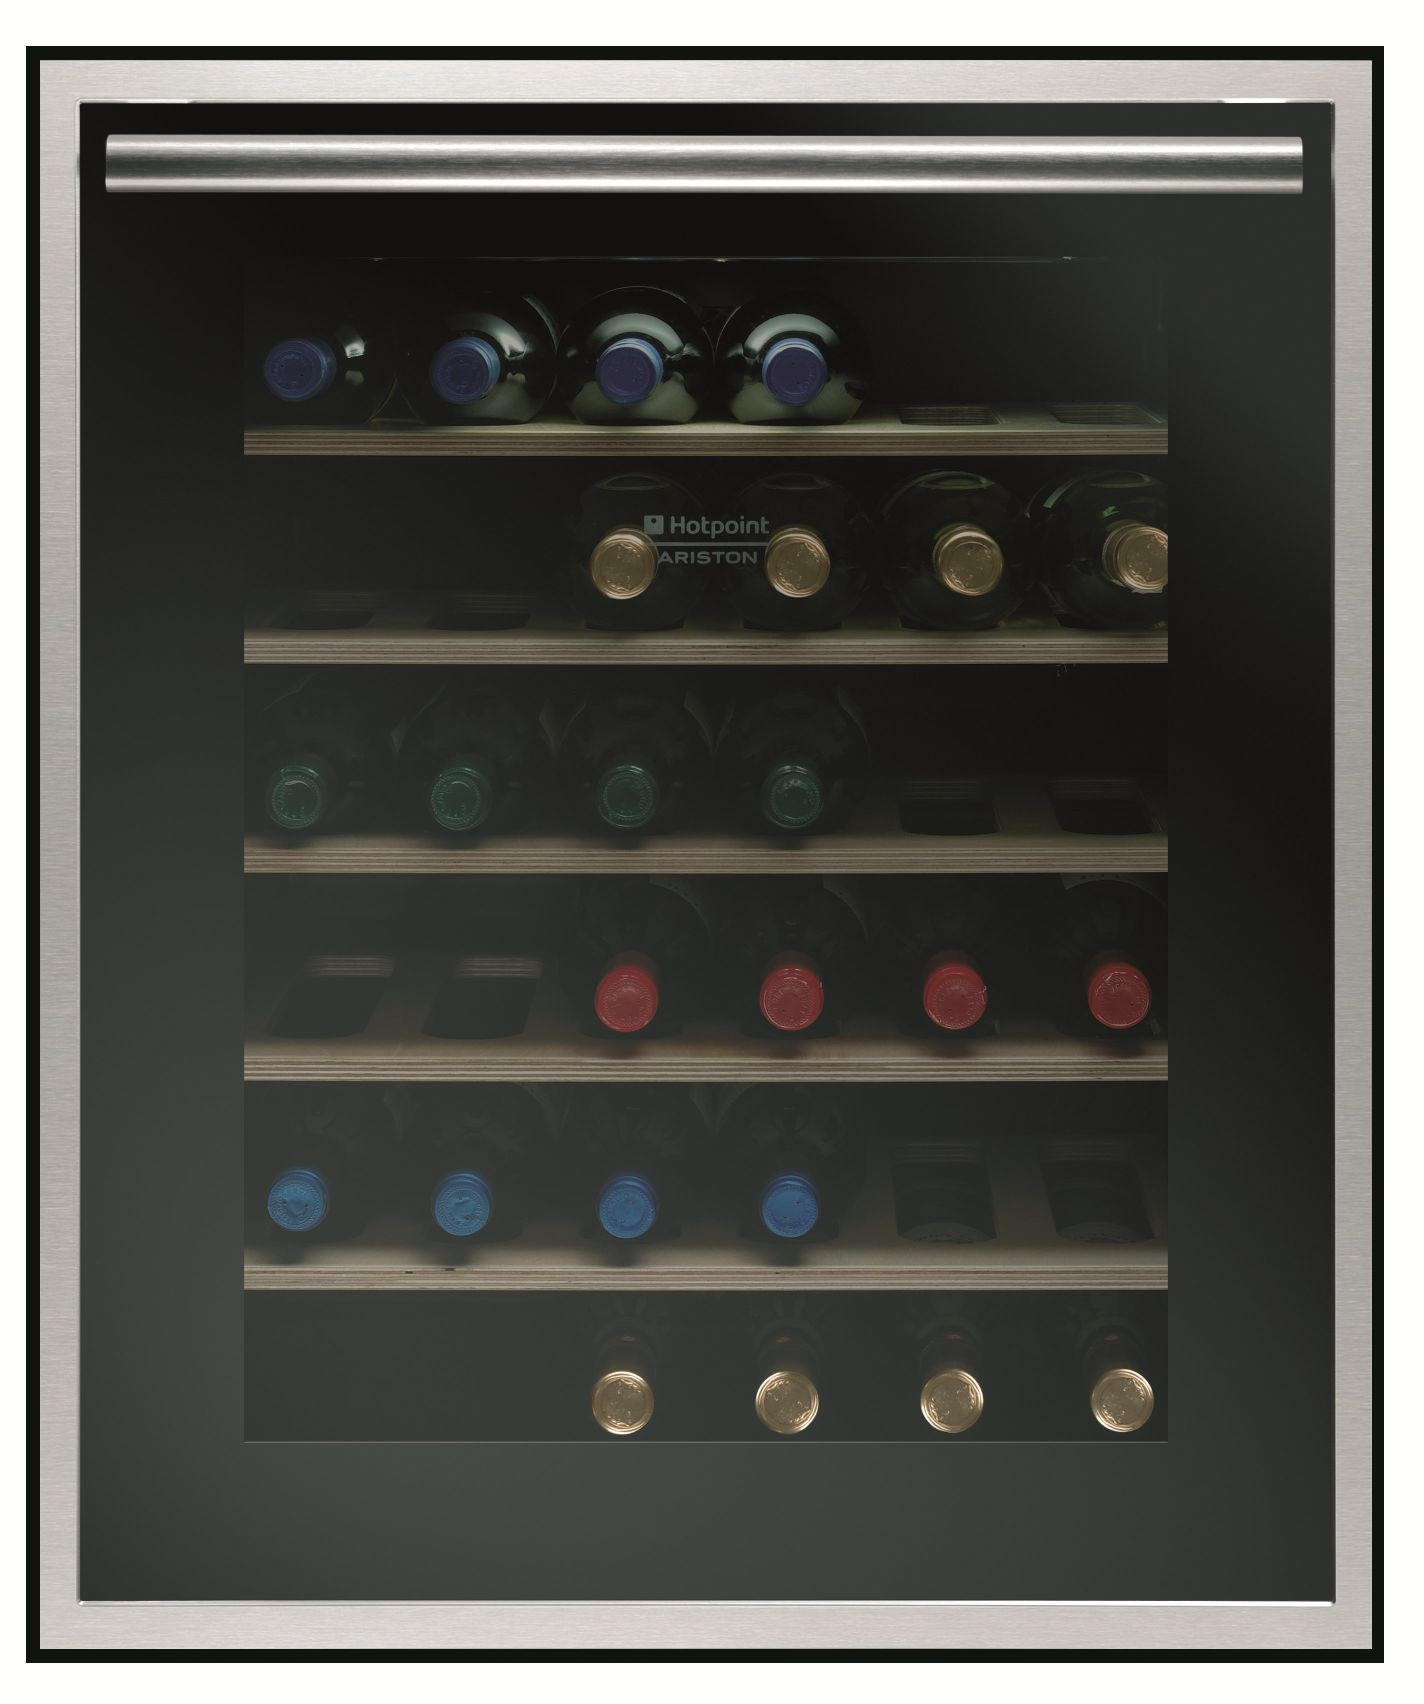 Built-in wine cooler Hotpoint-Ariston WL36AHA